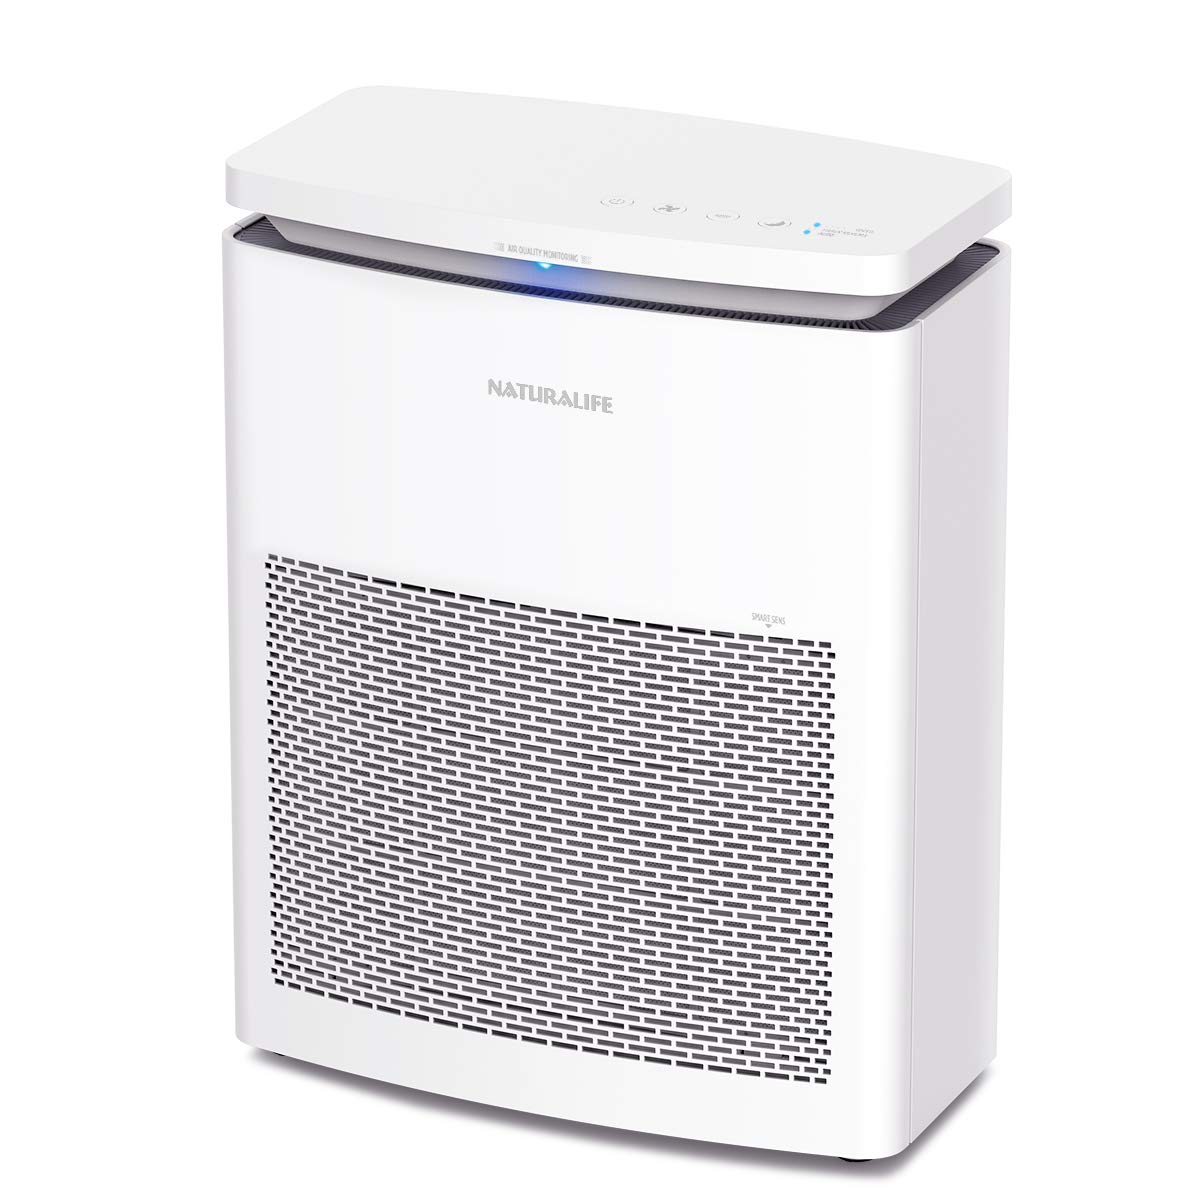 NATURALIFE Air Purifier 3-in 1 Air Cleaning System